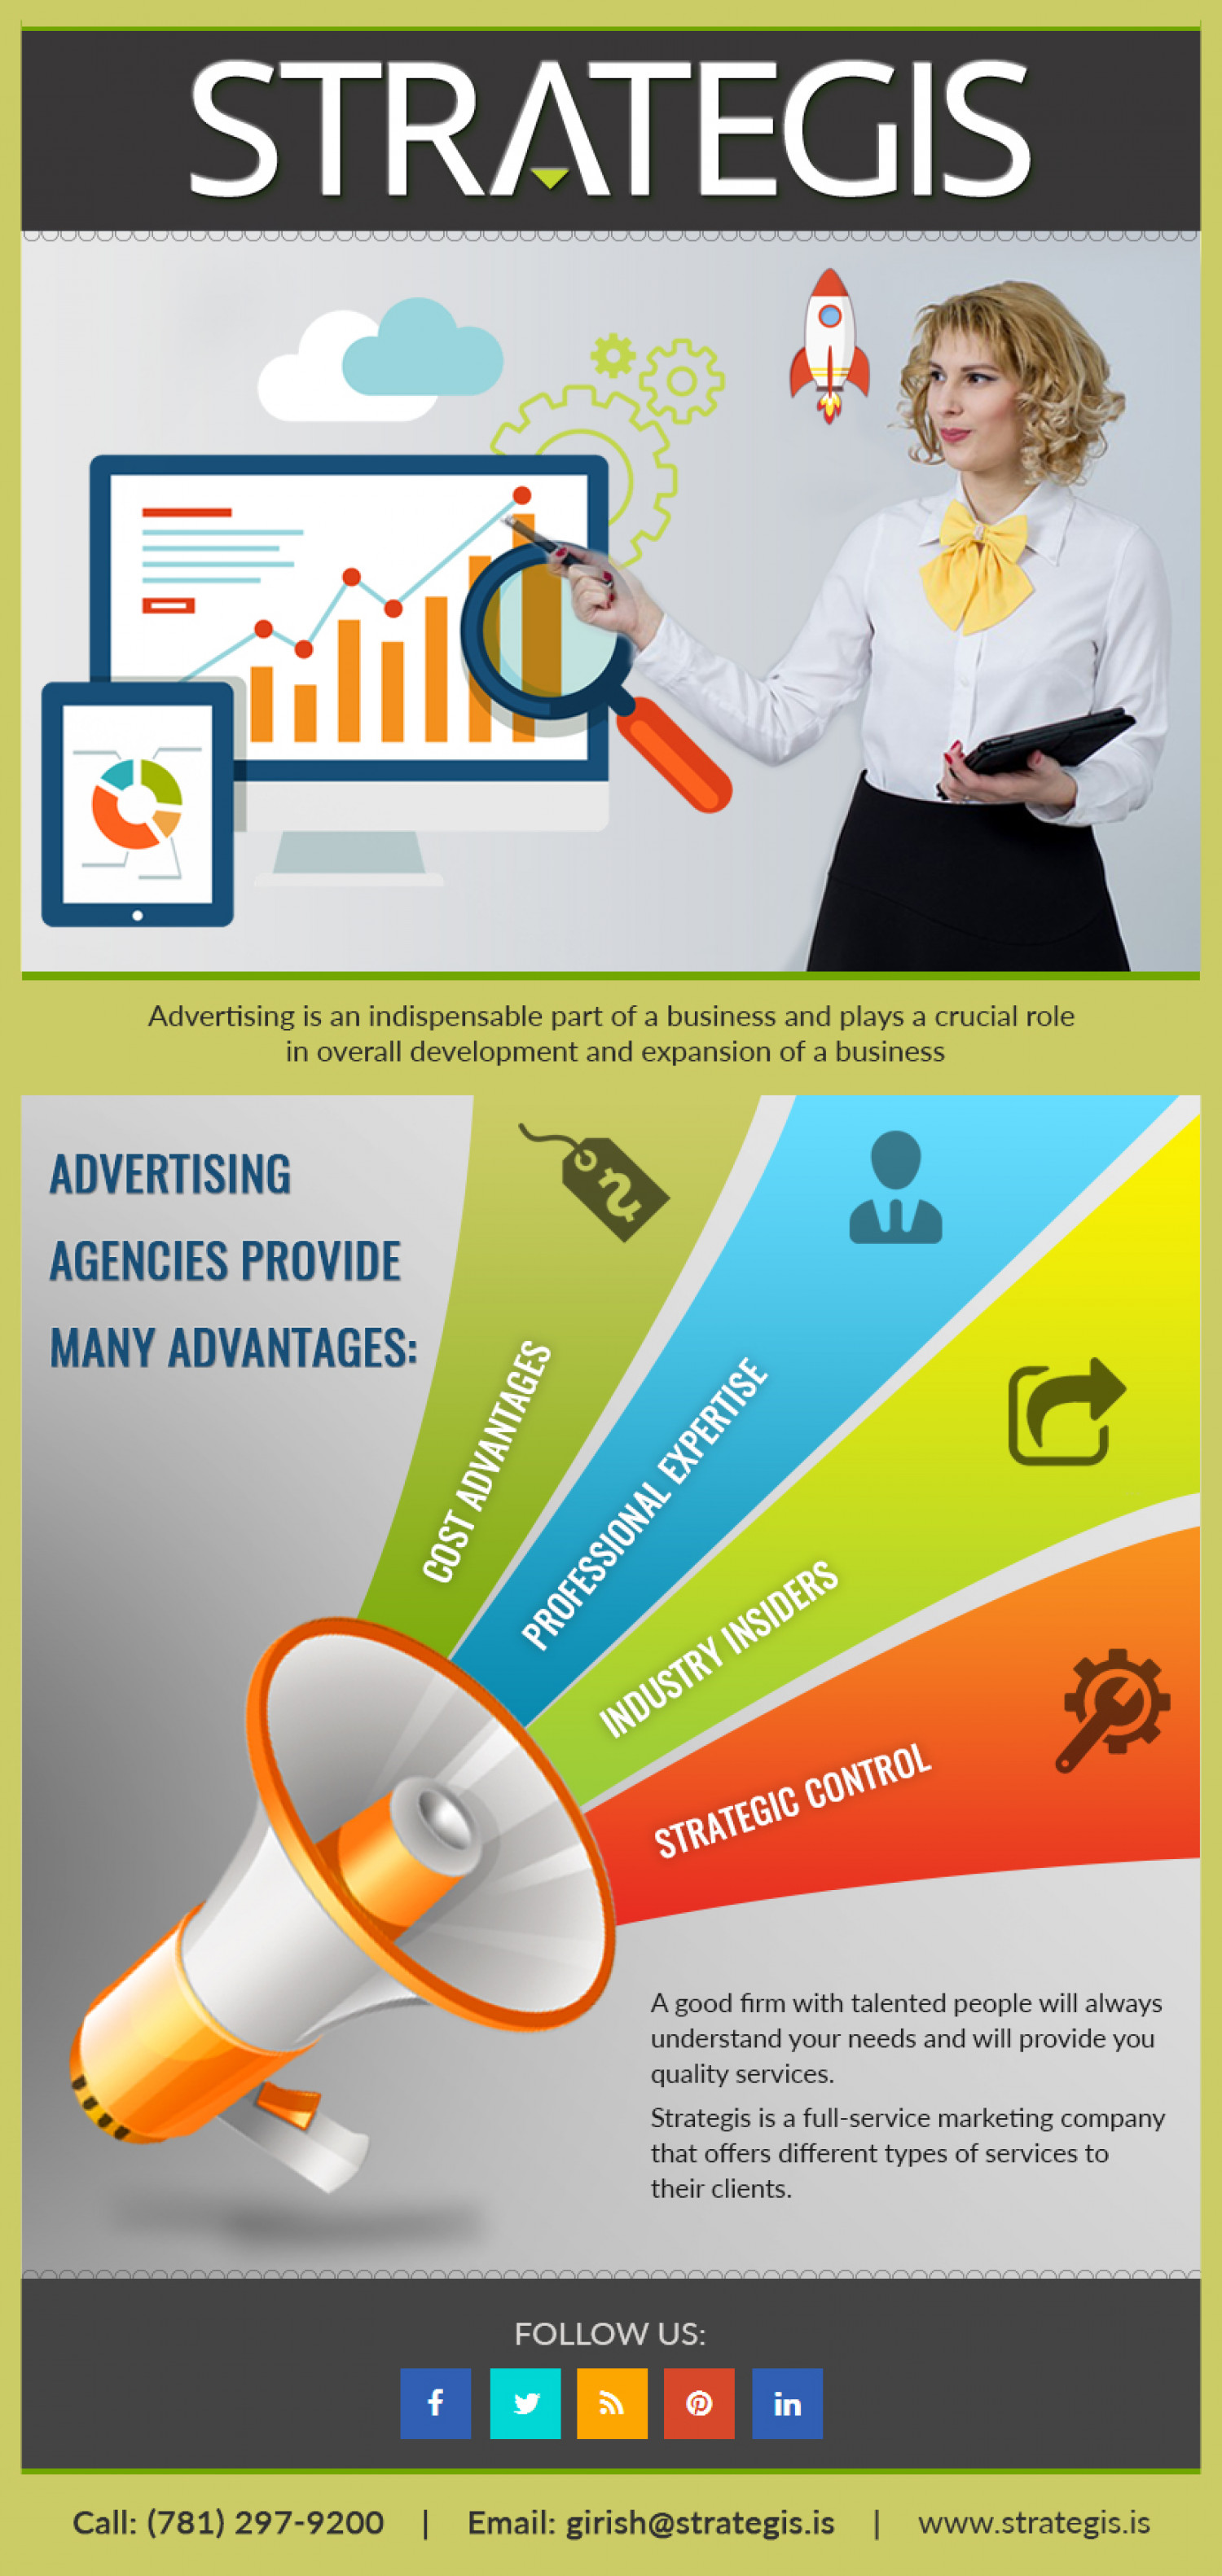 Make an ad with the Advertising Firms Infographic